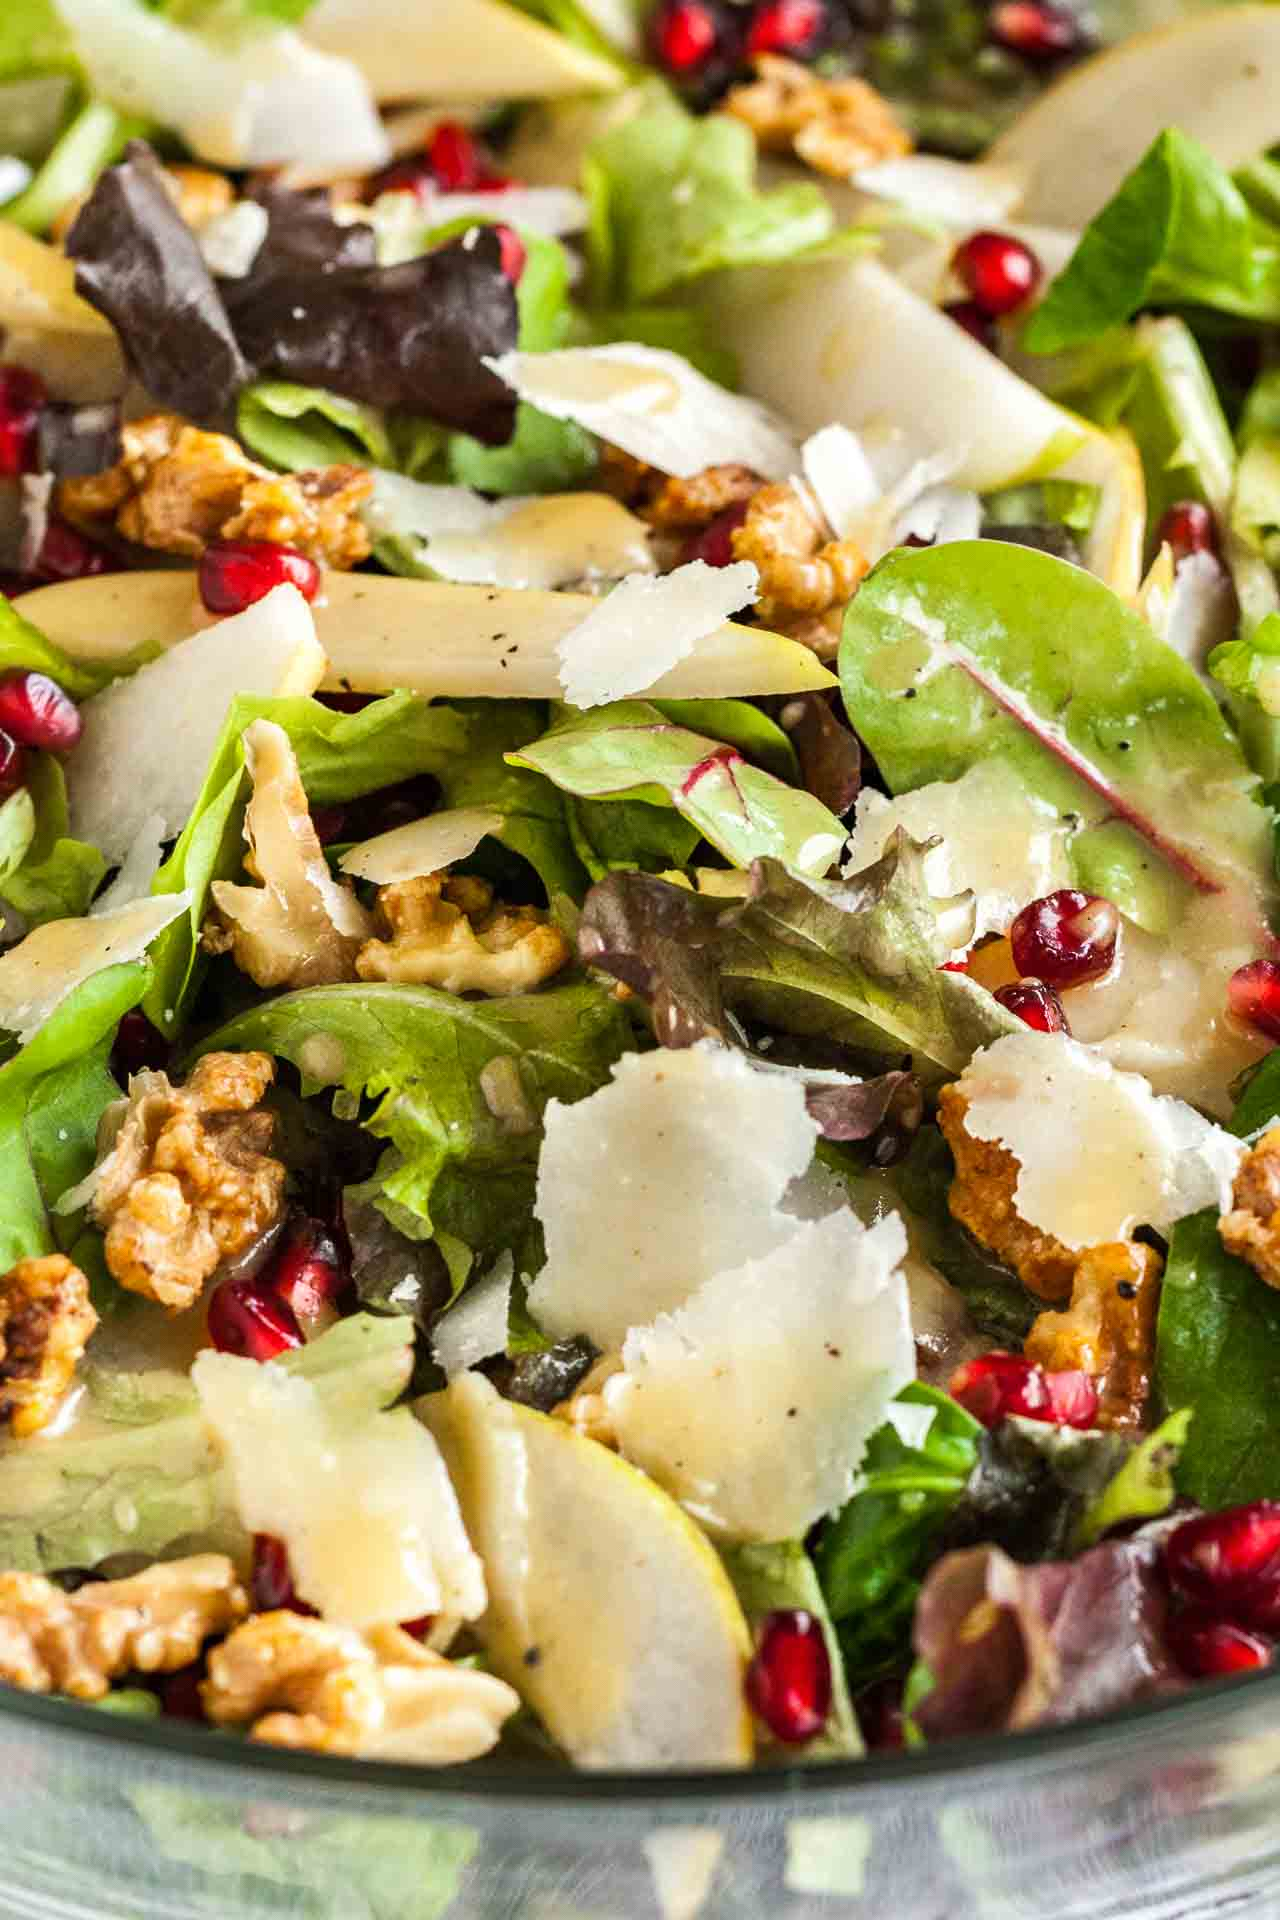 Pear Pomegranate Salad with Walnuts is loaded with flavors and different textures! A vibrant and delicious addition to your Holiday dinner table.